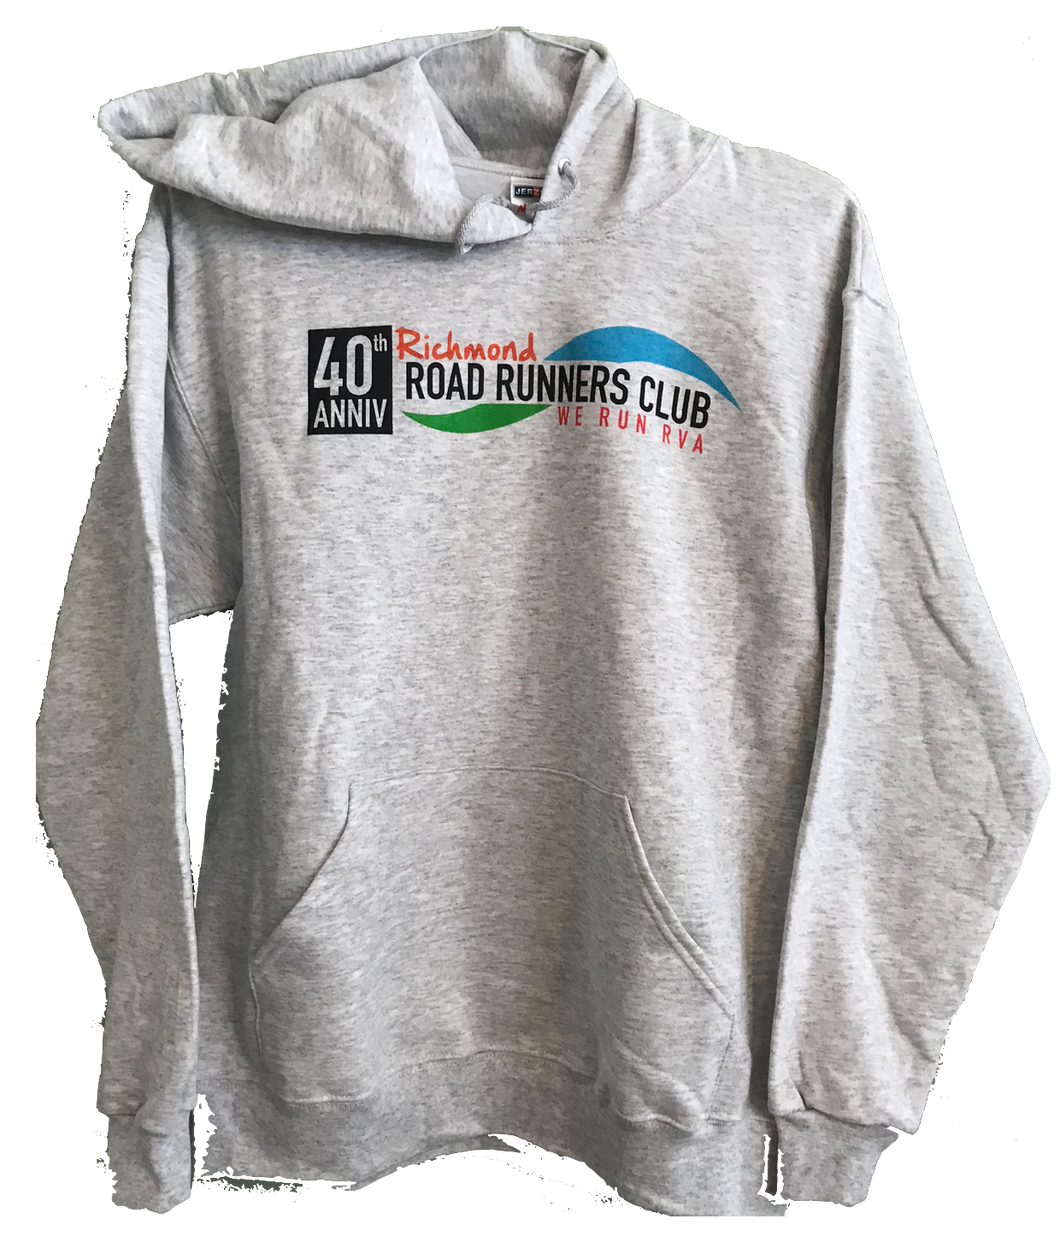 RRRC Hooded Sweatshirt - 40th Anniversary Edition